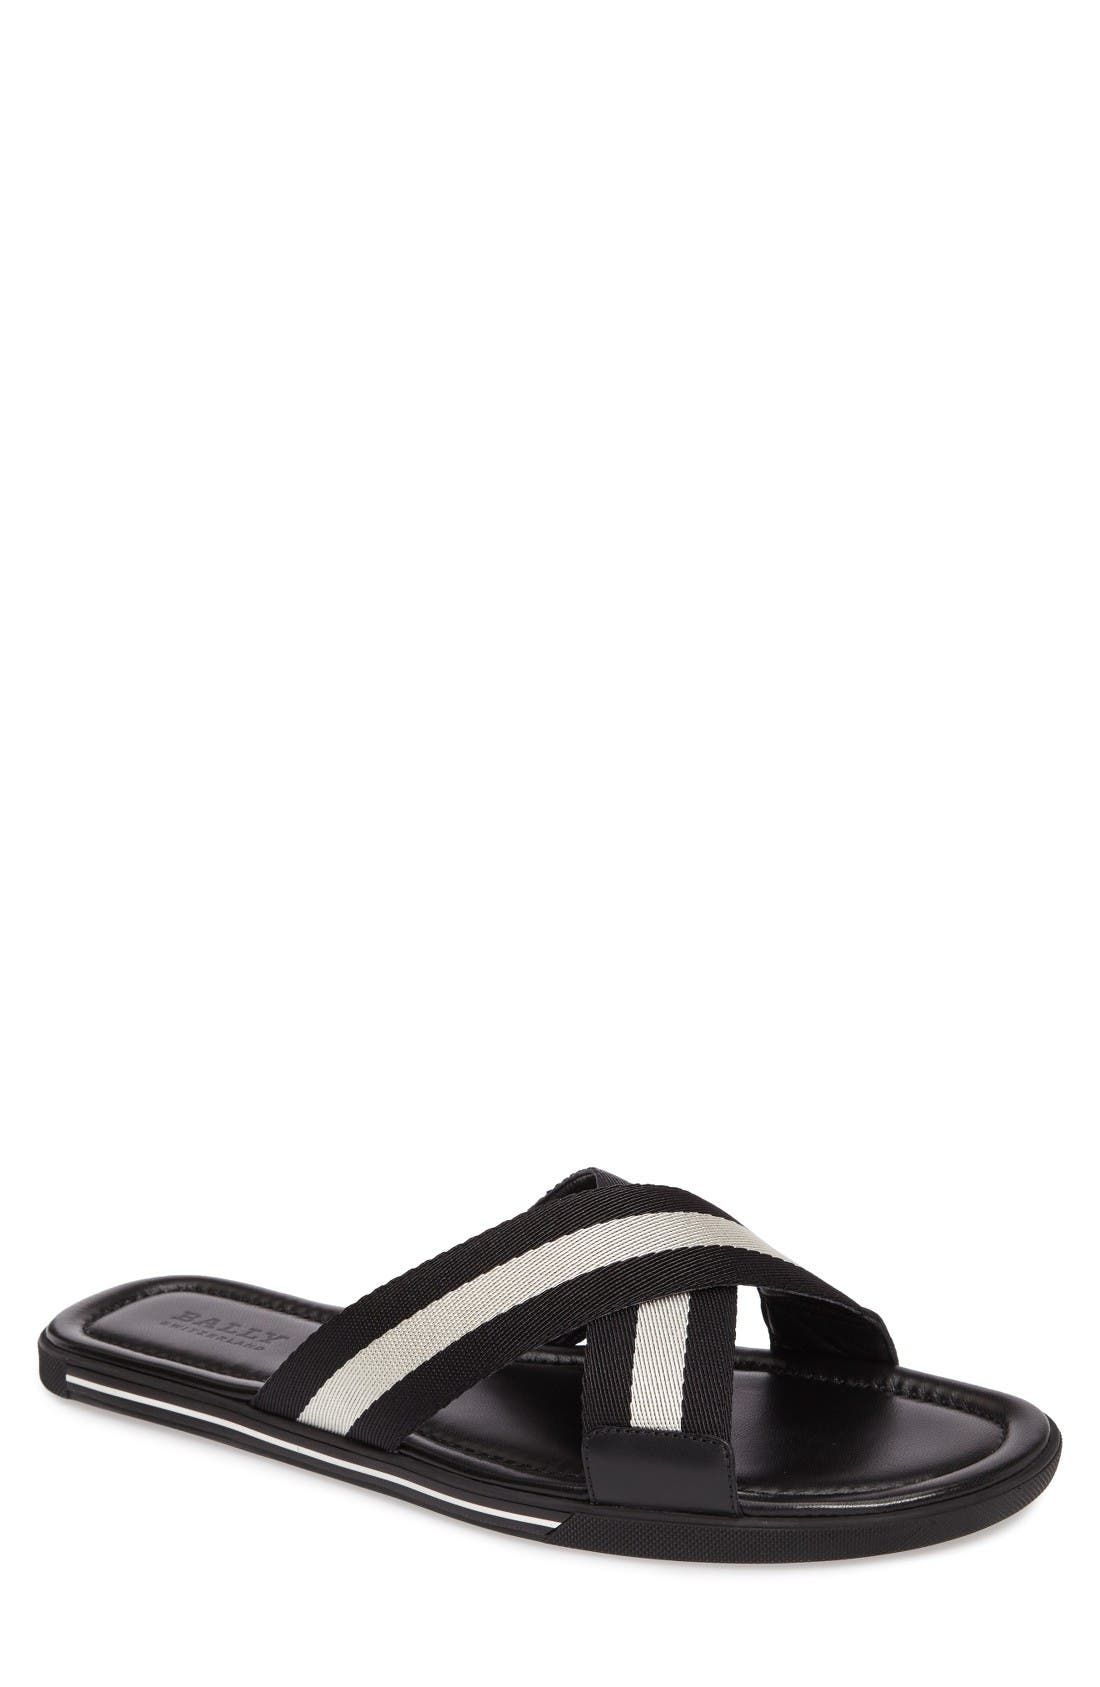 Bonks Slide Sandal,                         Main,                         color, Black/ Bone